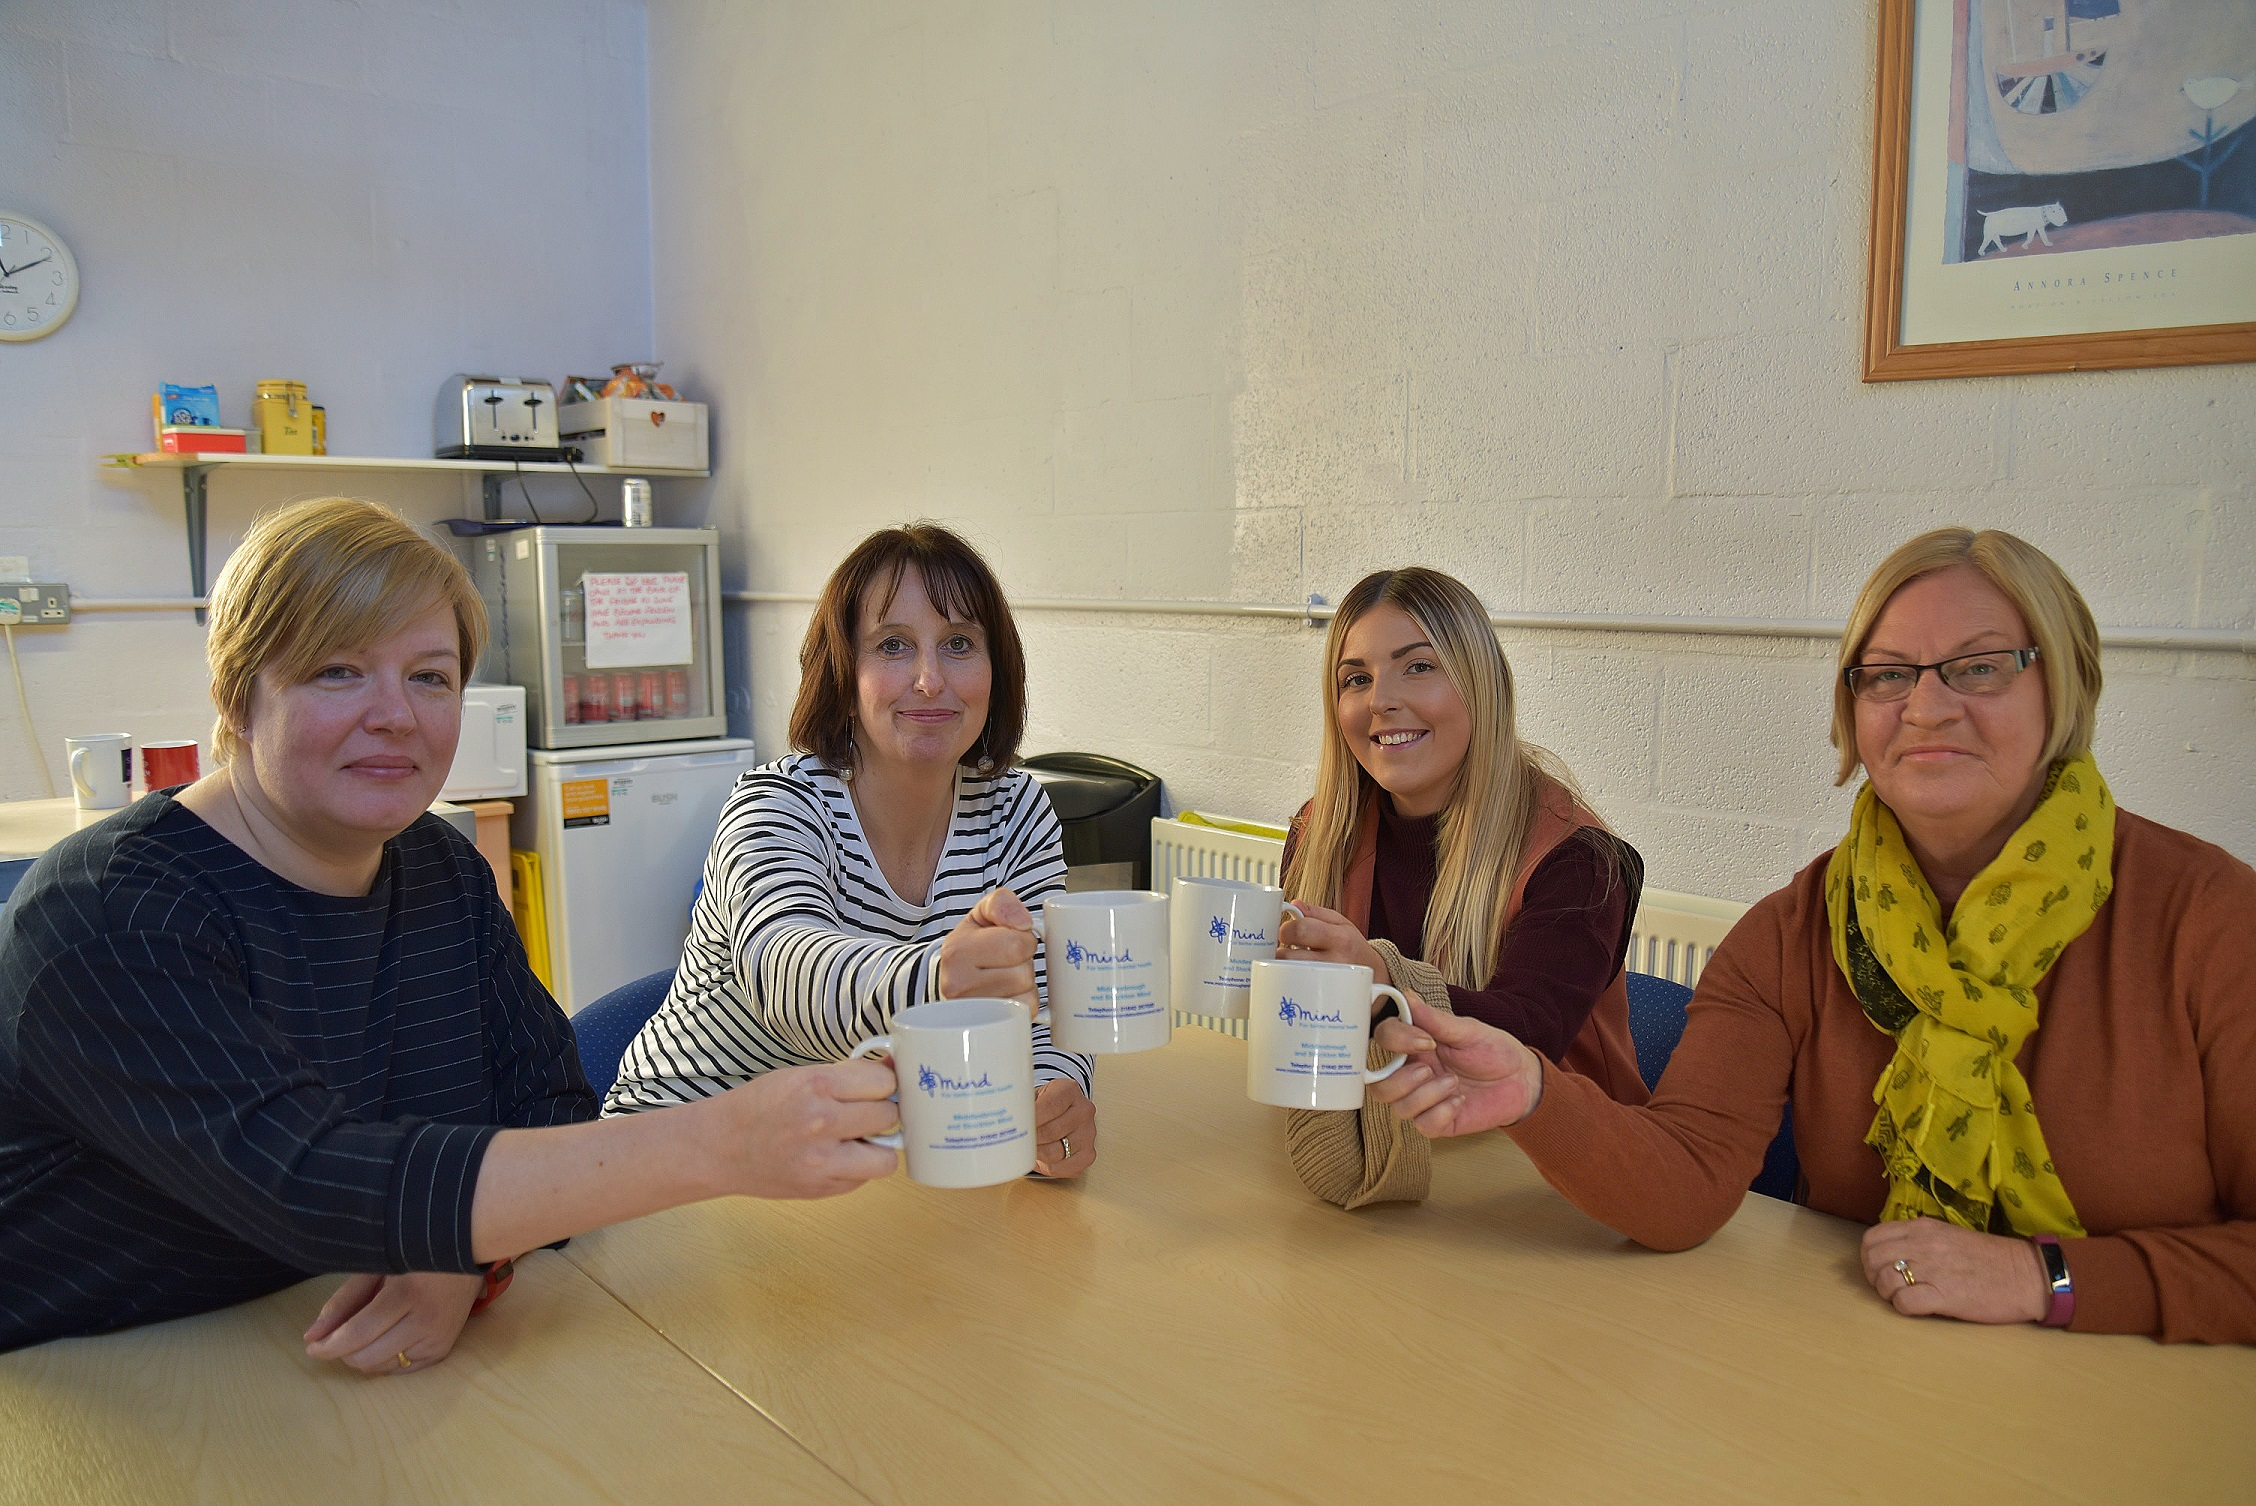 Teesside Crematorium has raised £5,000 for Middlesbrough and Stockton MIND. Pictured from L-R is Heather Watson, Sarah Ross and Bethany Dean, all from MIND, and Cllr Tracy Harvey, Middlesbrough Council's Executive Member for Environment and Commercial Ser